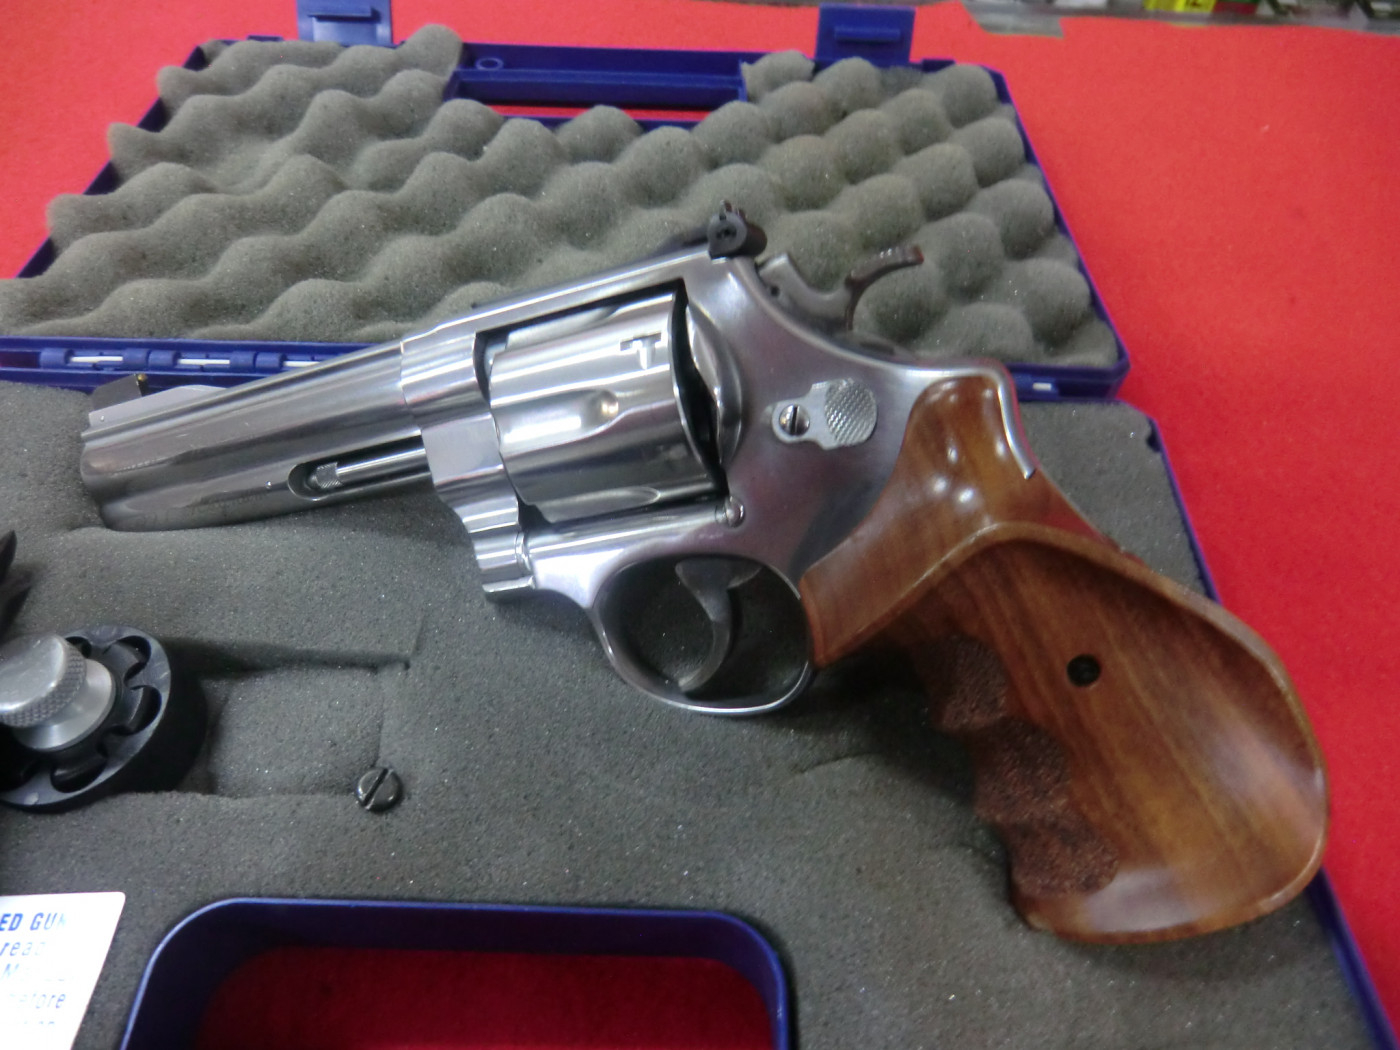 REVOLVER smith & wesson calibro 357 Magnum modello 627 Target Shampion